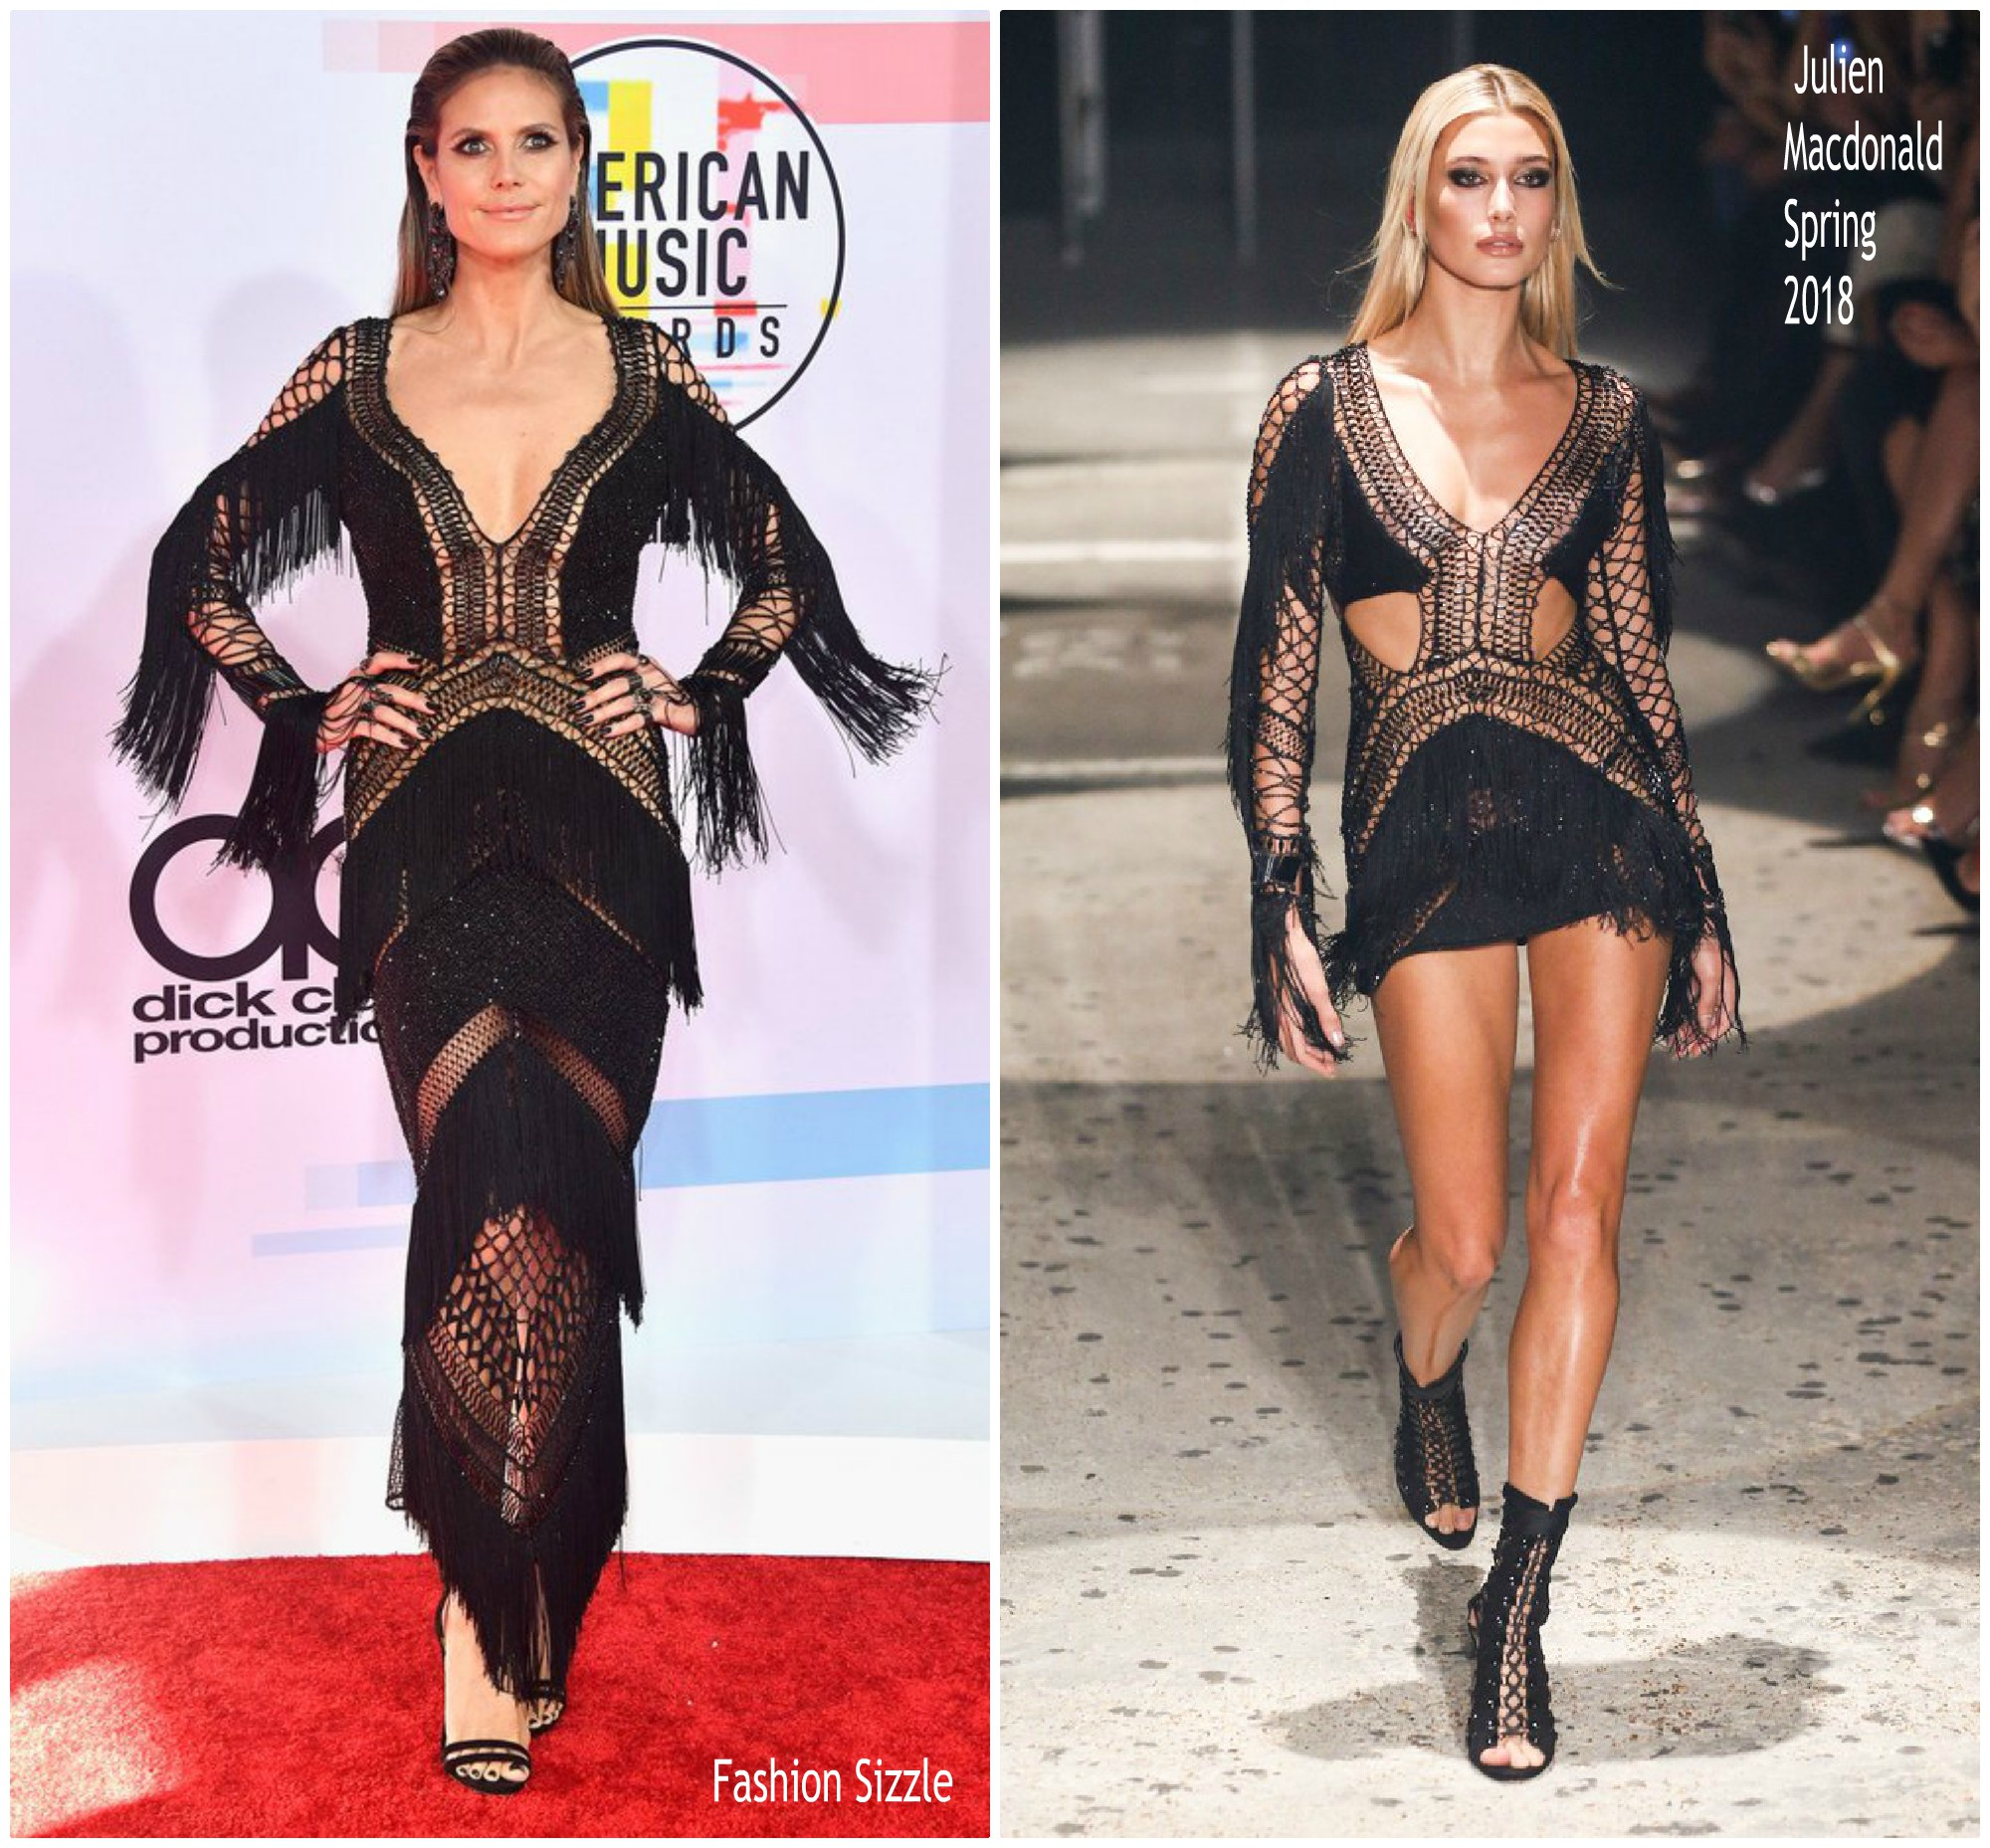 heidi-klum-in-julien-macdonald-2018-american-music-awards